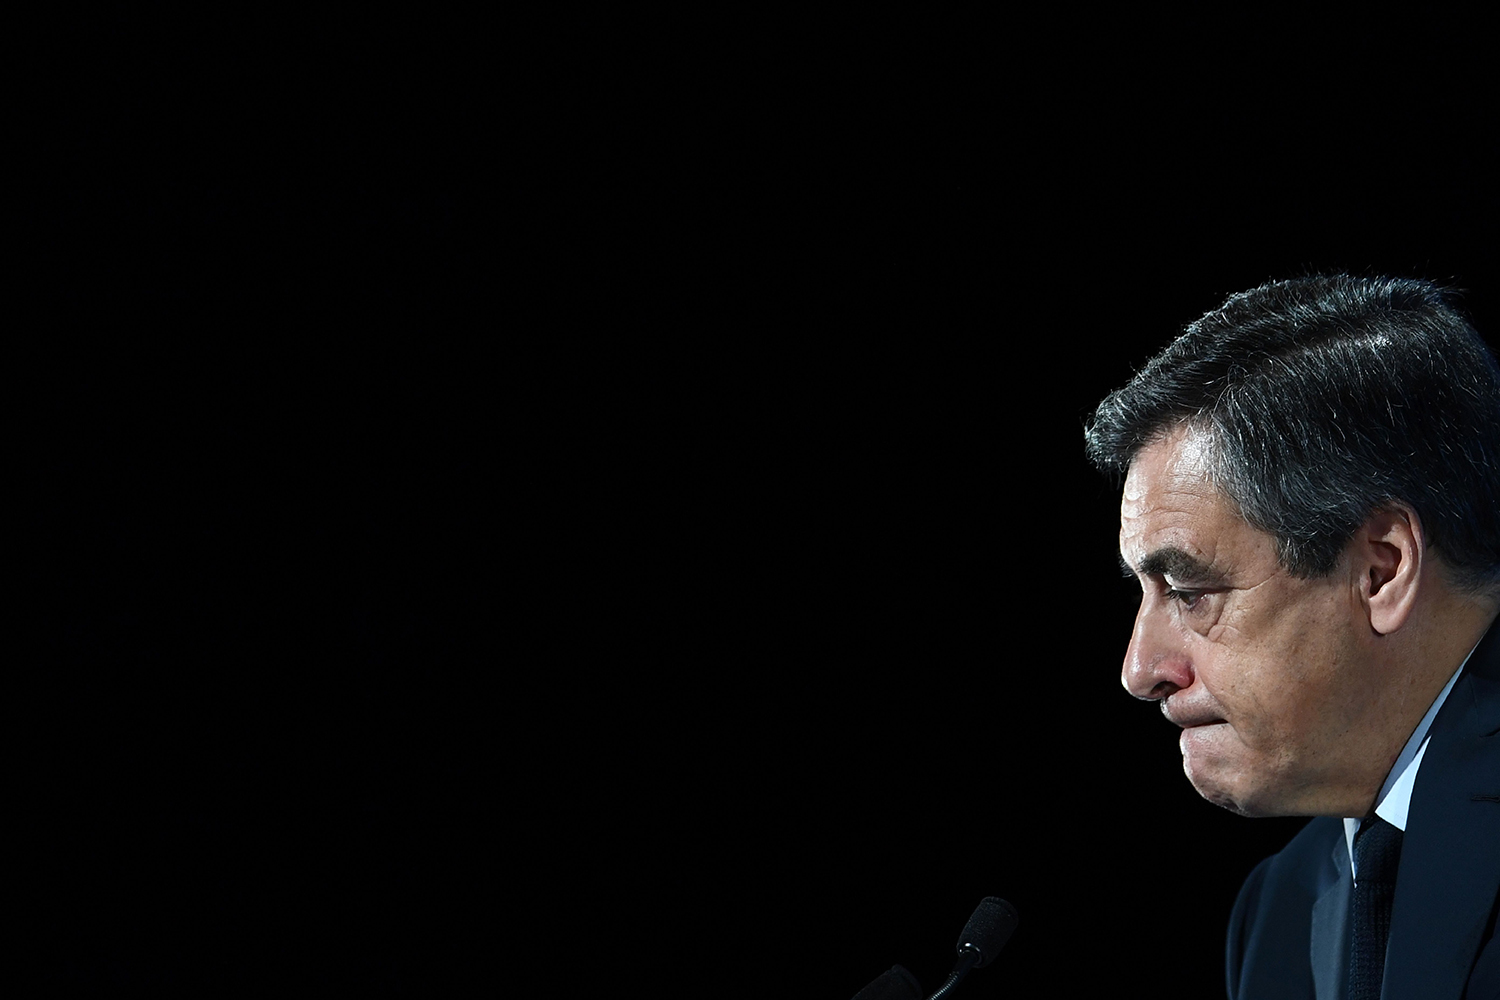 TOPSHOT - French presidential election candidate for the right-wing Les Republicains (LR) party Francois Fillon delivers a speech to present his programm during a campaign meeting in Aubervilliers, outside Paris, on March 4, 2017. / AFP PHOTO / Martin BUREAU / TT / kod 444